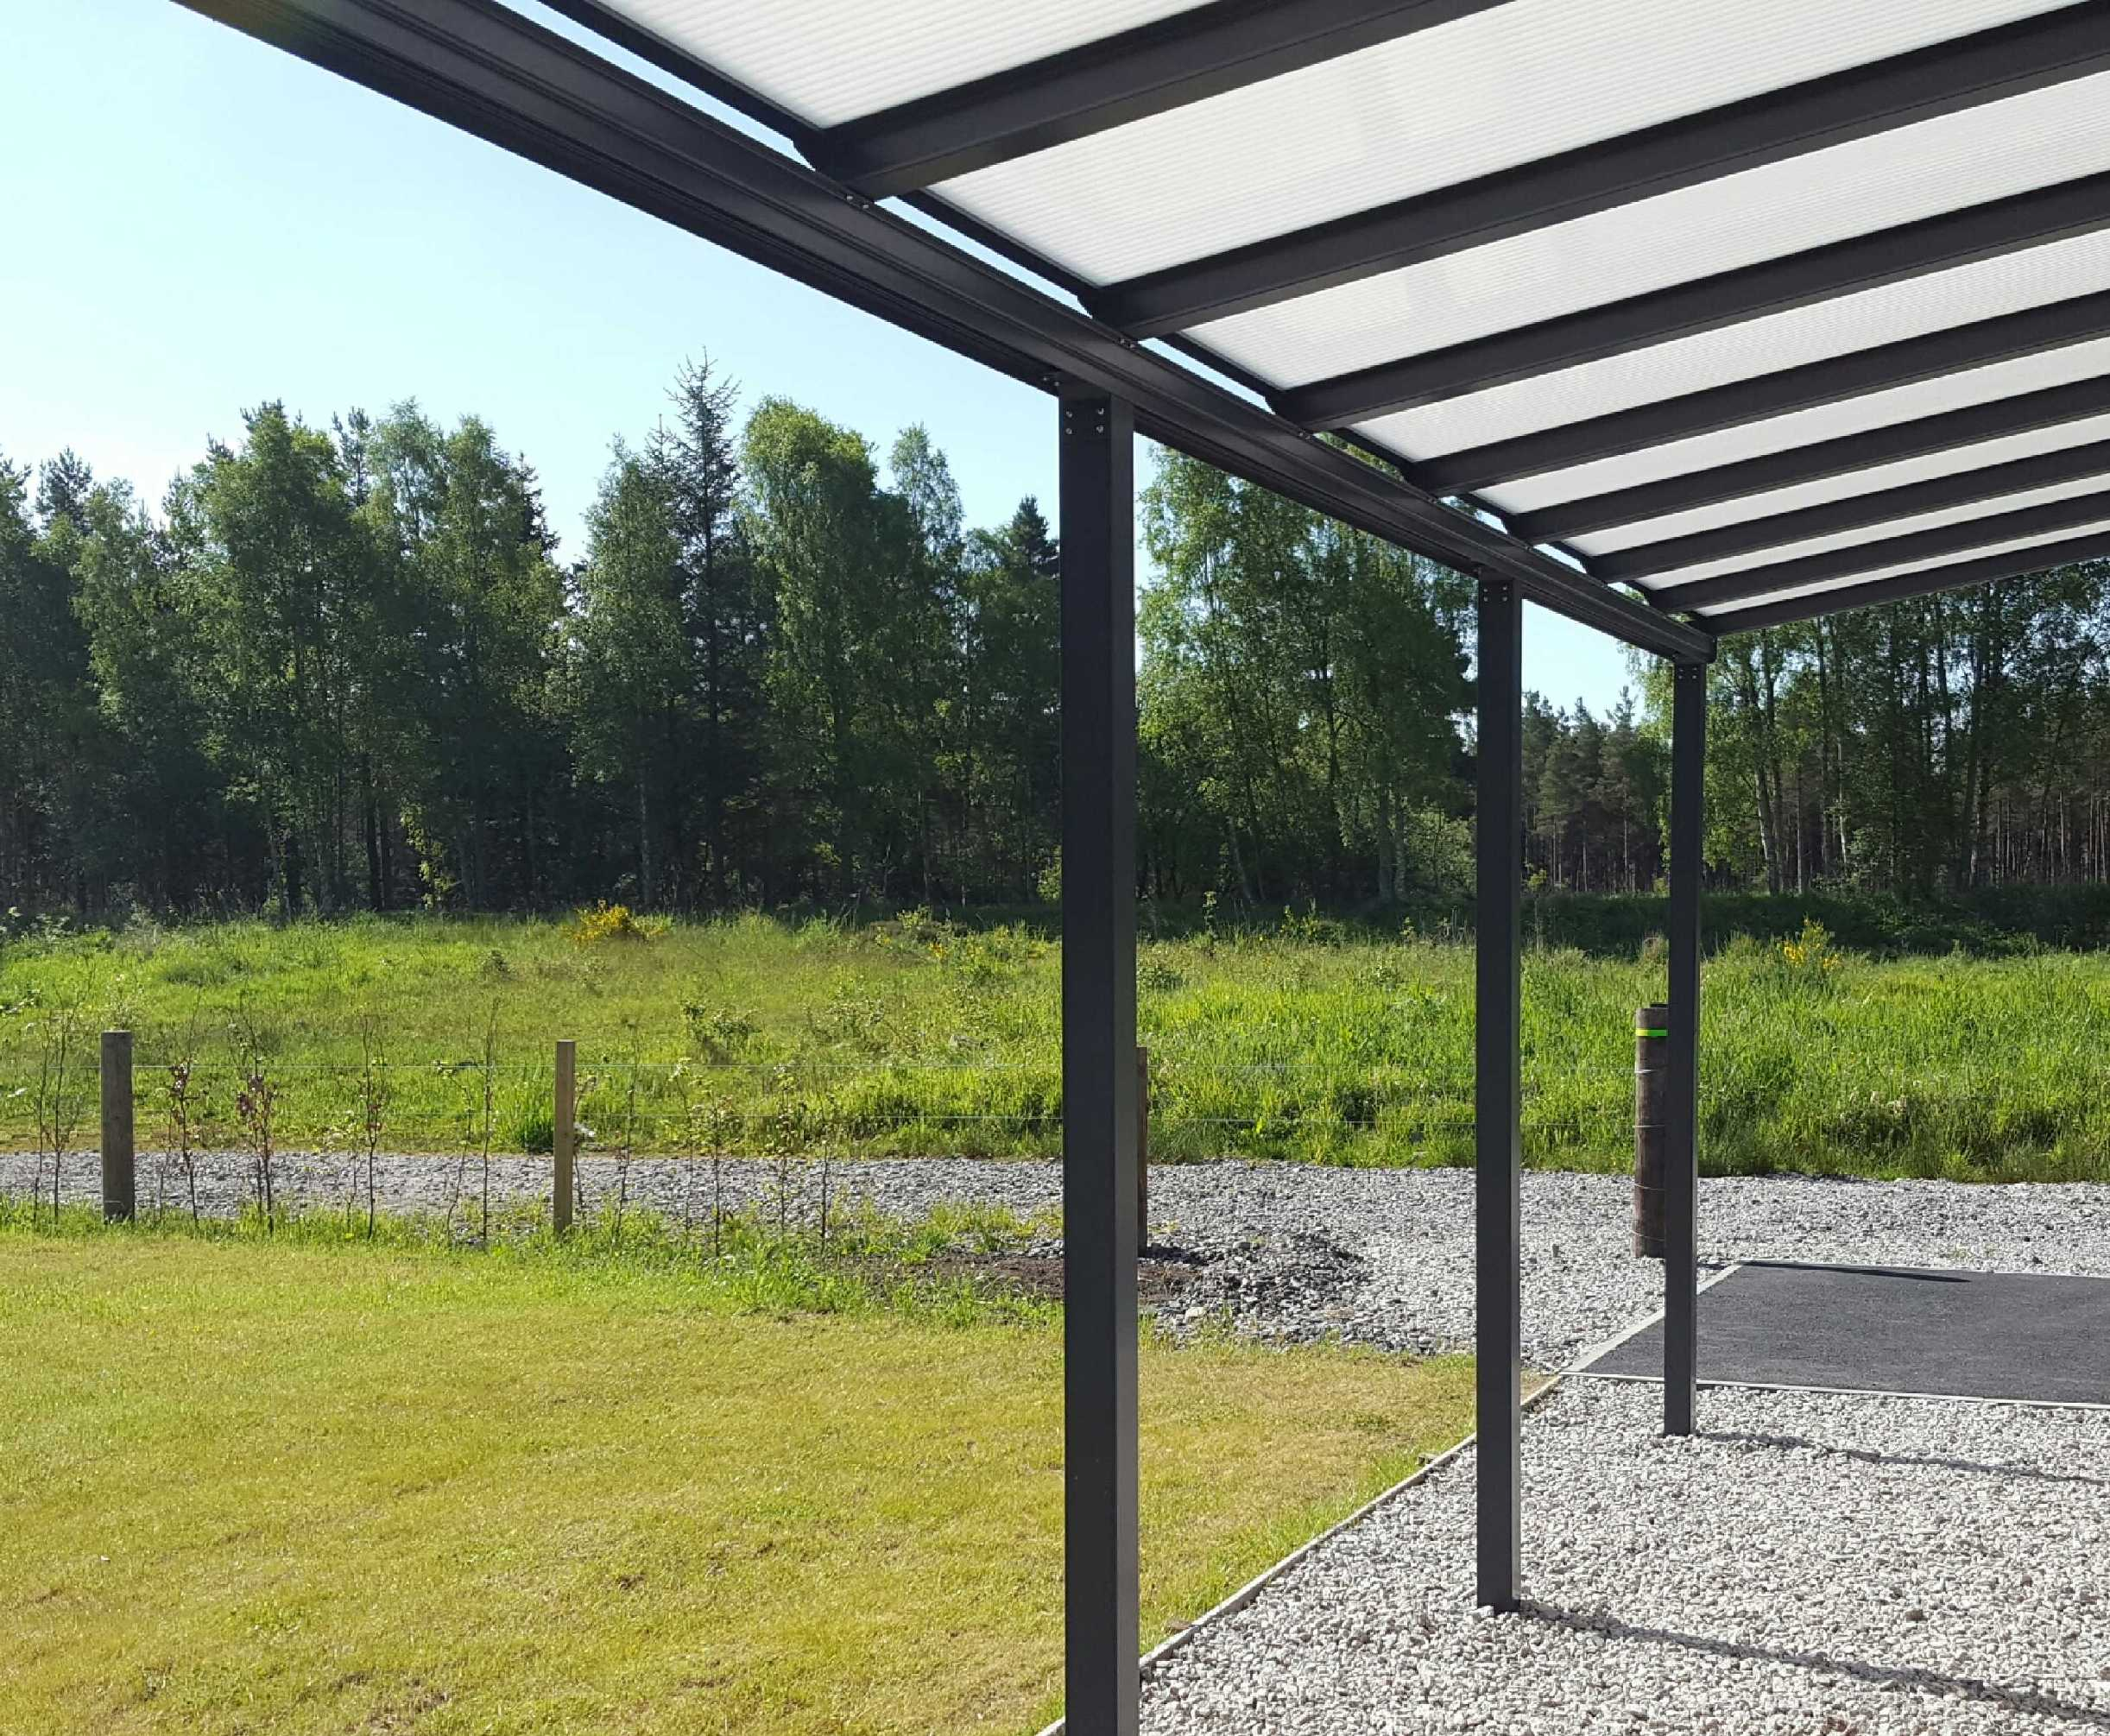 Omega Smart Lean-To Canopy, Anthracite Grey, UNGLAZED for 6mm Glazing - 10.5m (W) x 2.5m (P), (5) Supporting Posts